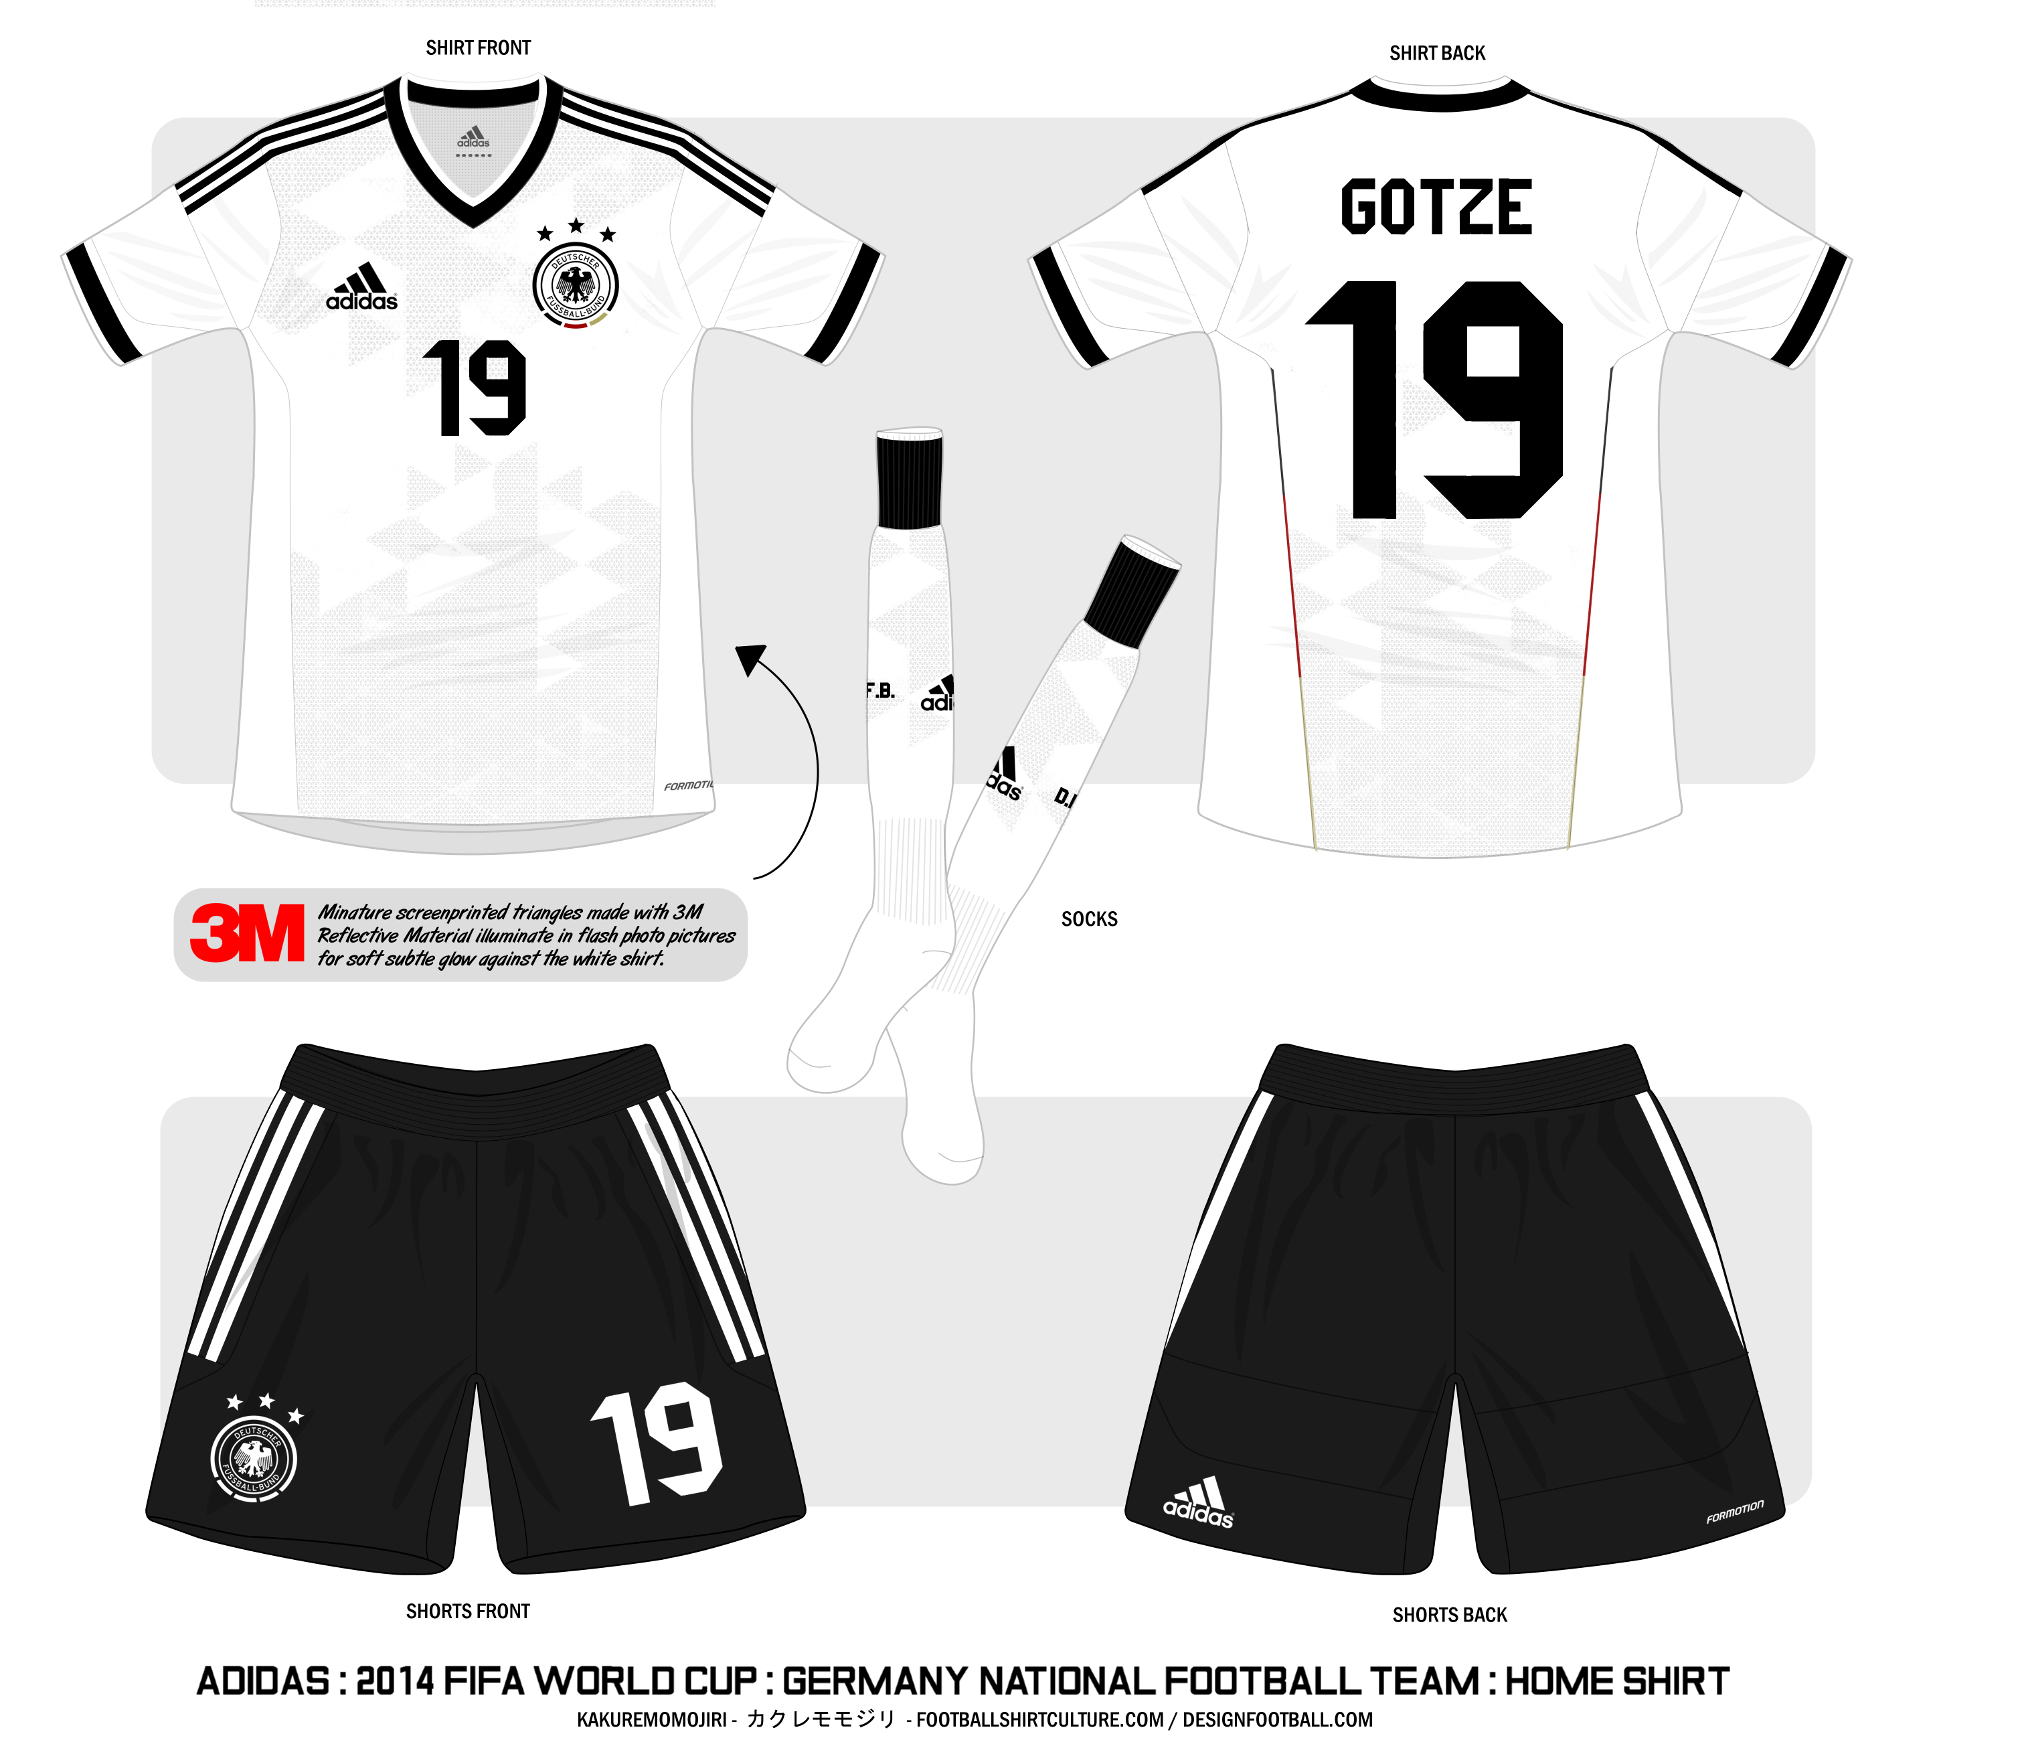 a5d762f2d 2014 FIFA WORLD CUP   Germany National Team   Adidas Home Shirt